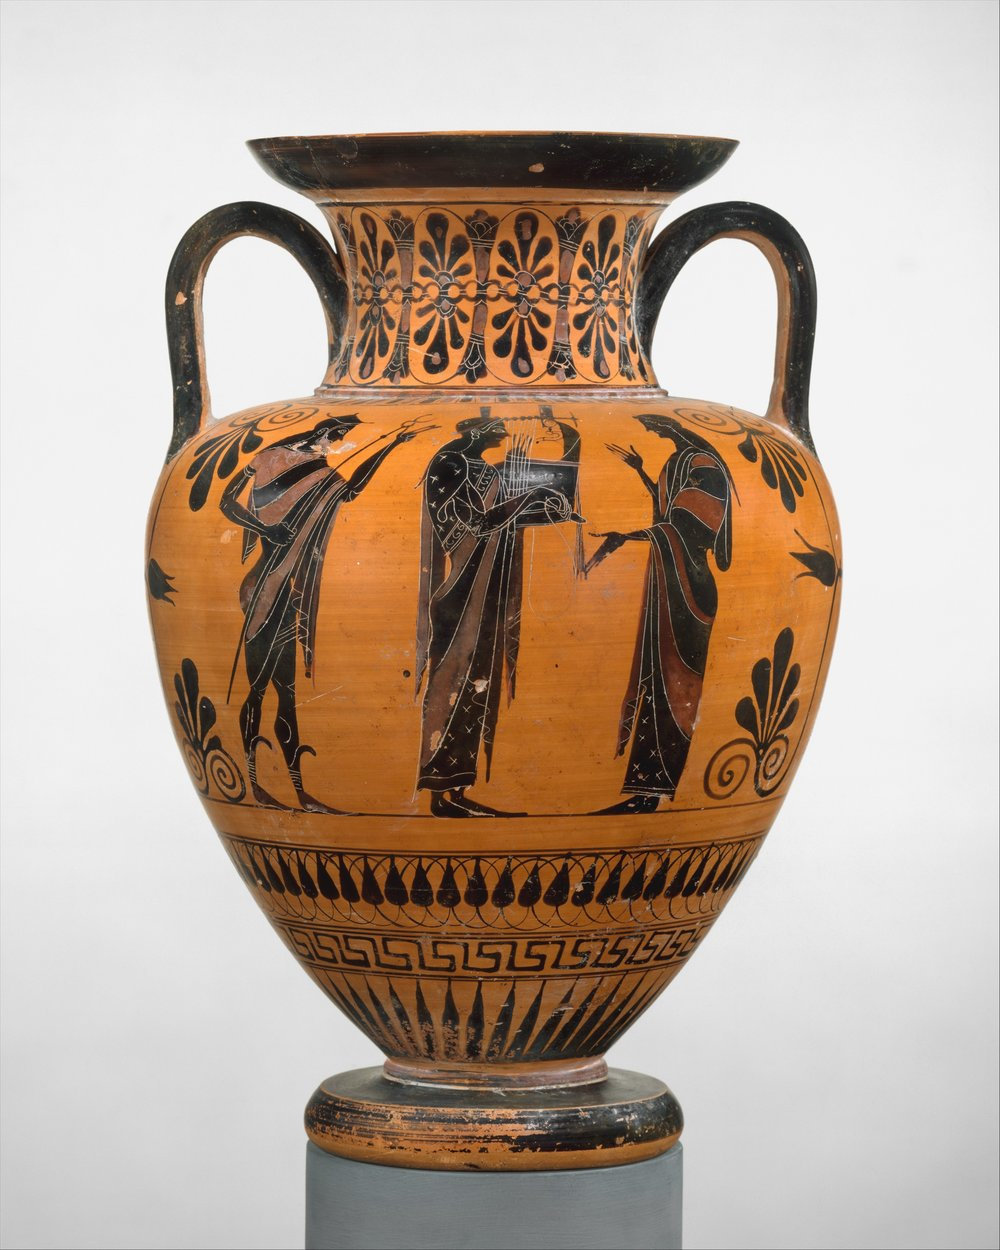 Neck-Amphora attributed to an artist near Exekias, ca 530 BC. From the Metropolitan Museum of Art.